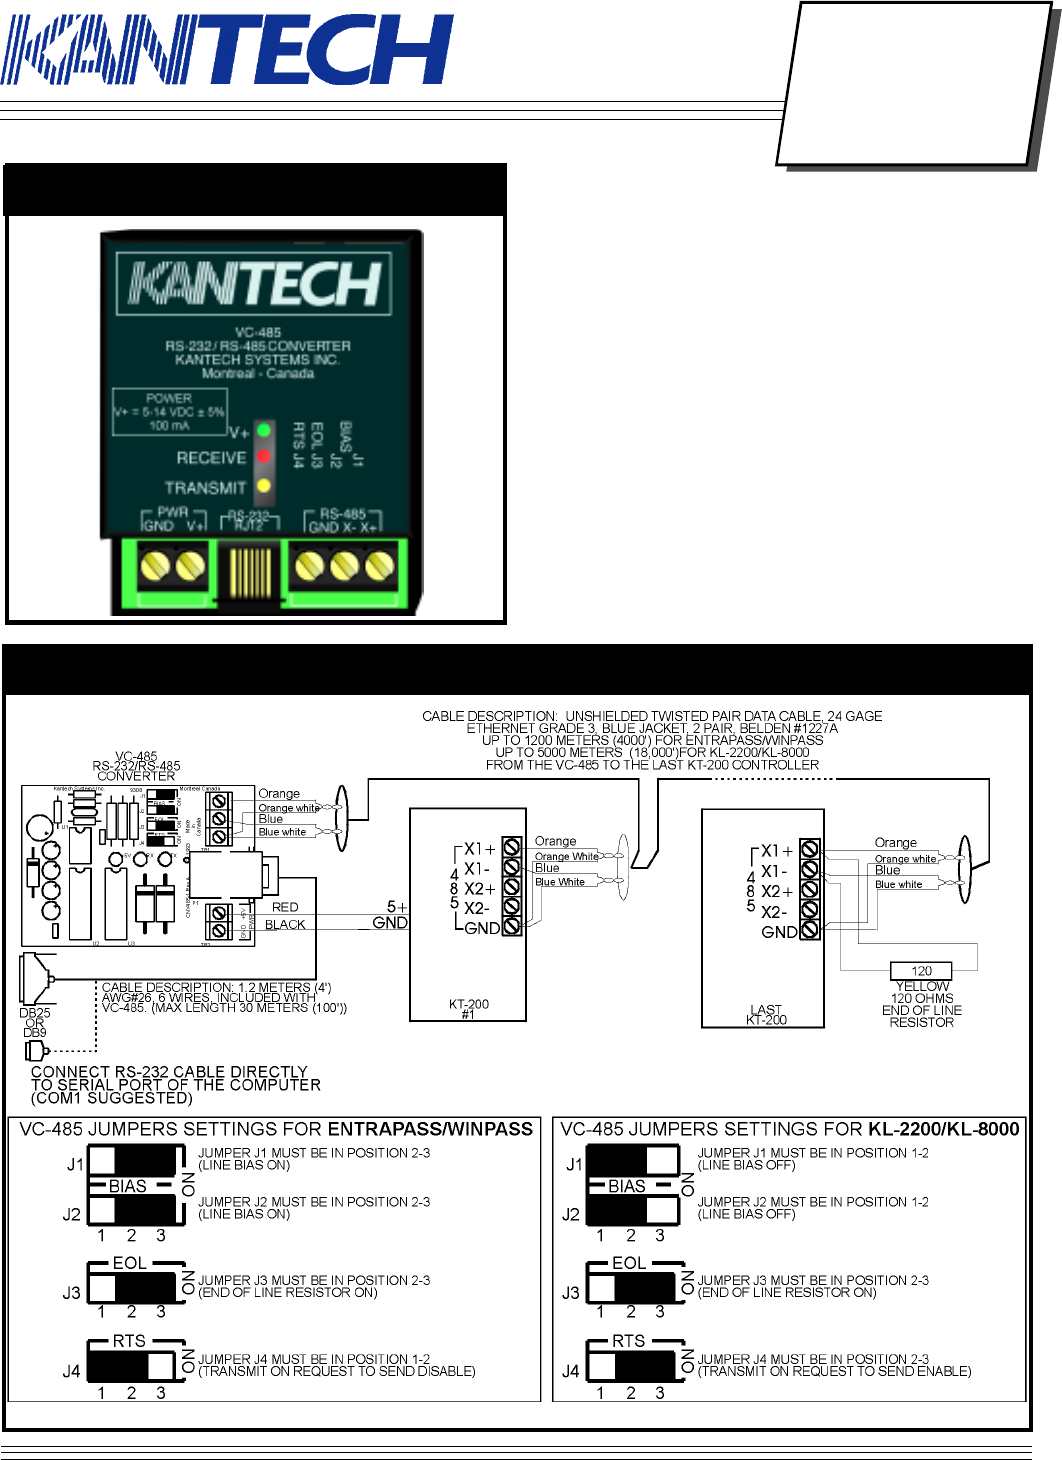 69caf81f 2a3e 4088 88a3 58b0a6b98403 bg1 american dynamics network card vc 485 user guide manualsonline com kantech wiring diagram at bakdesigns.co